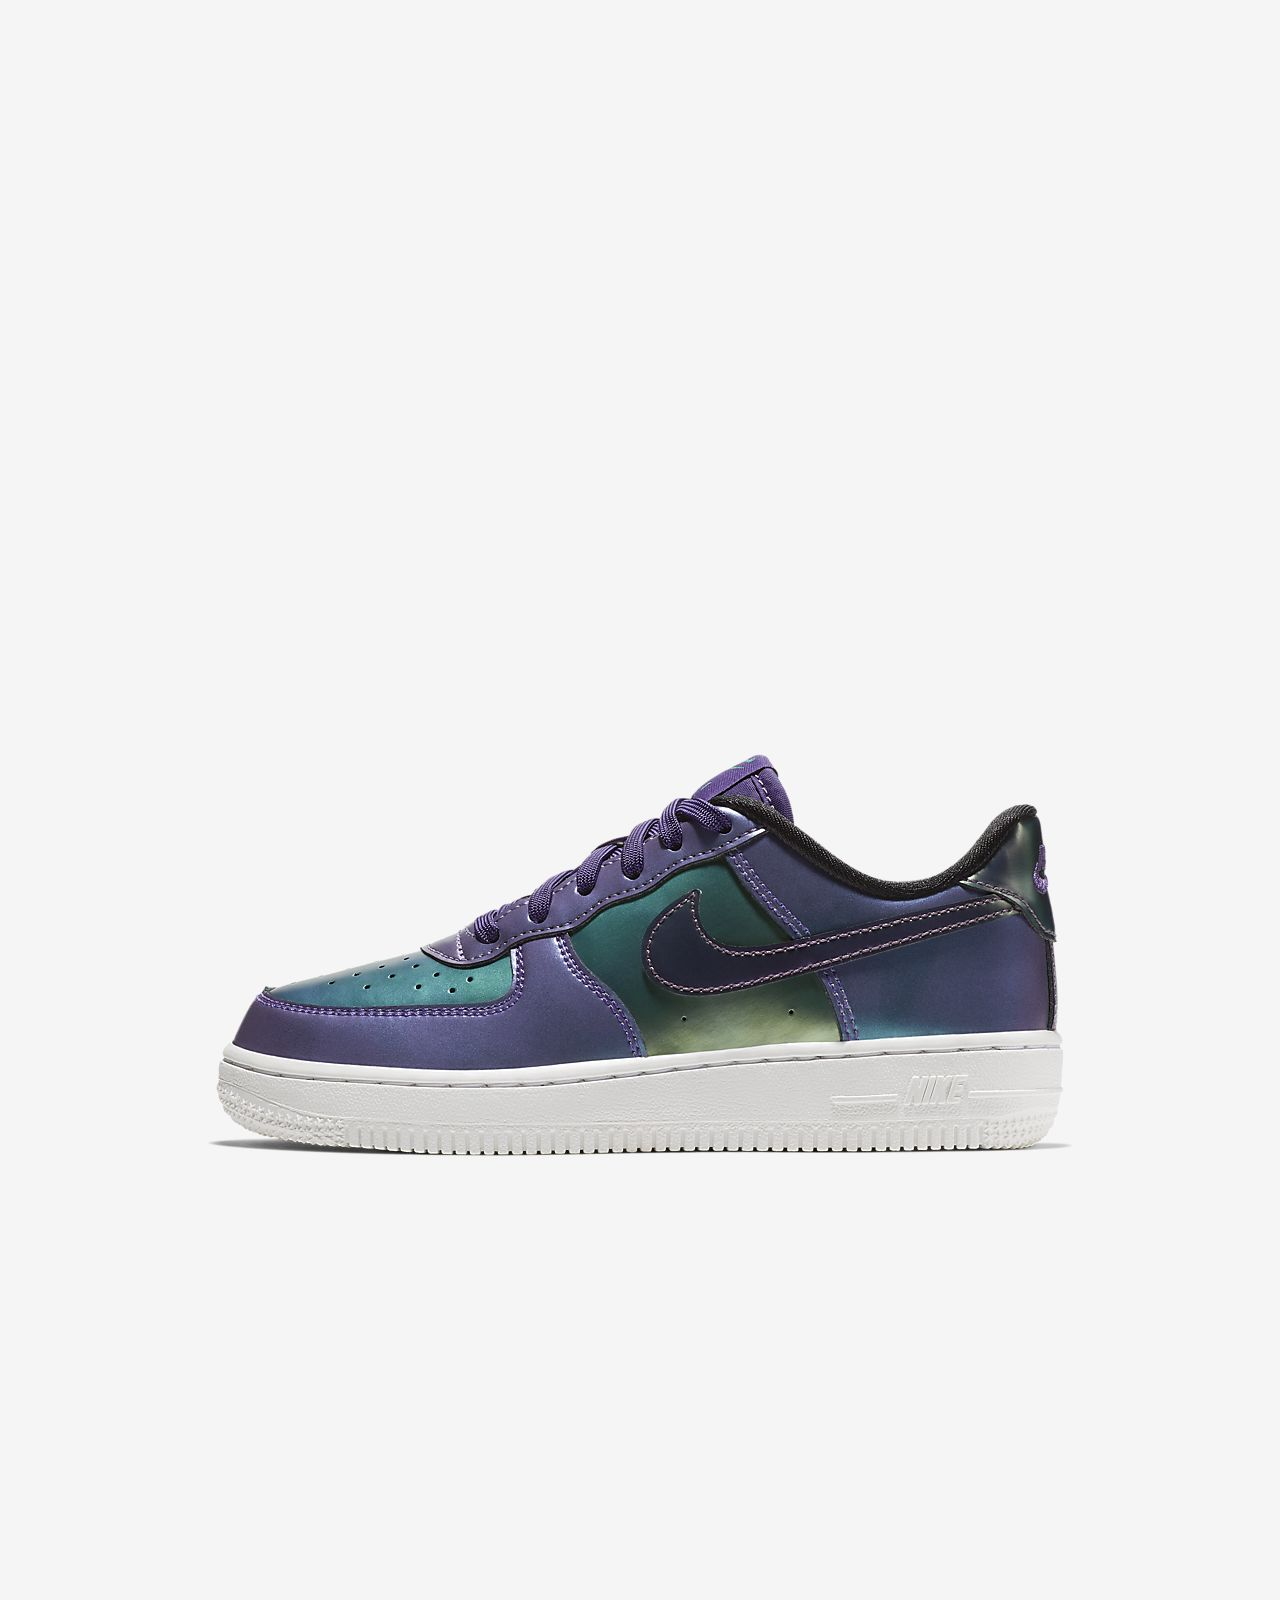 Nike Air Force 1 LV8 Little Kids' Shoe